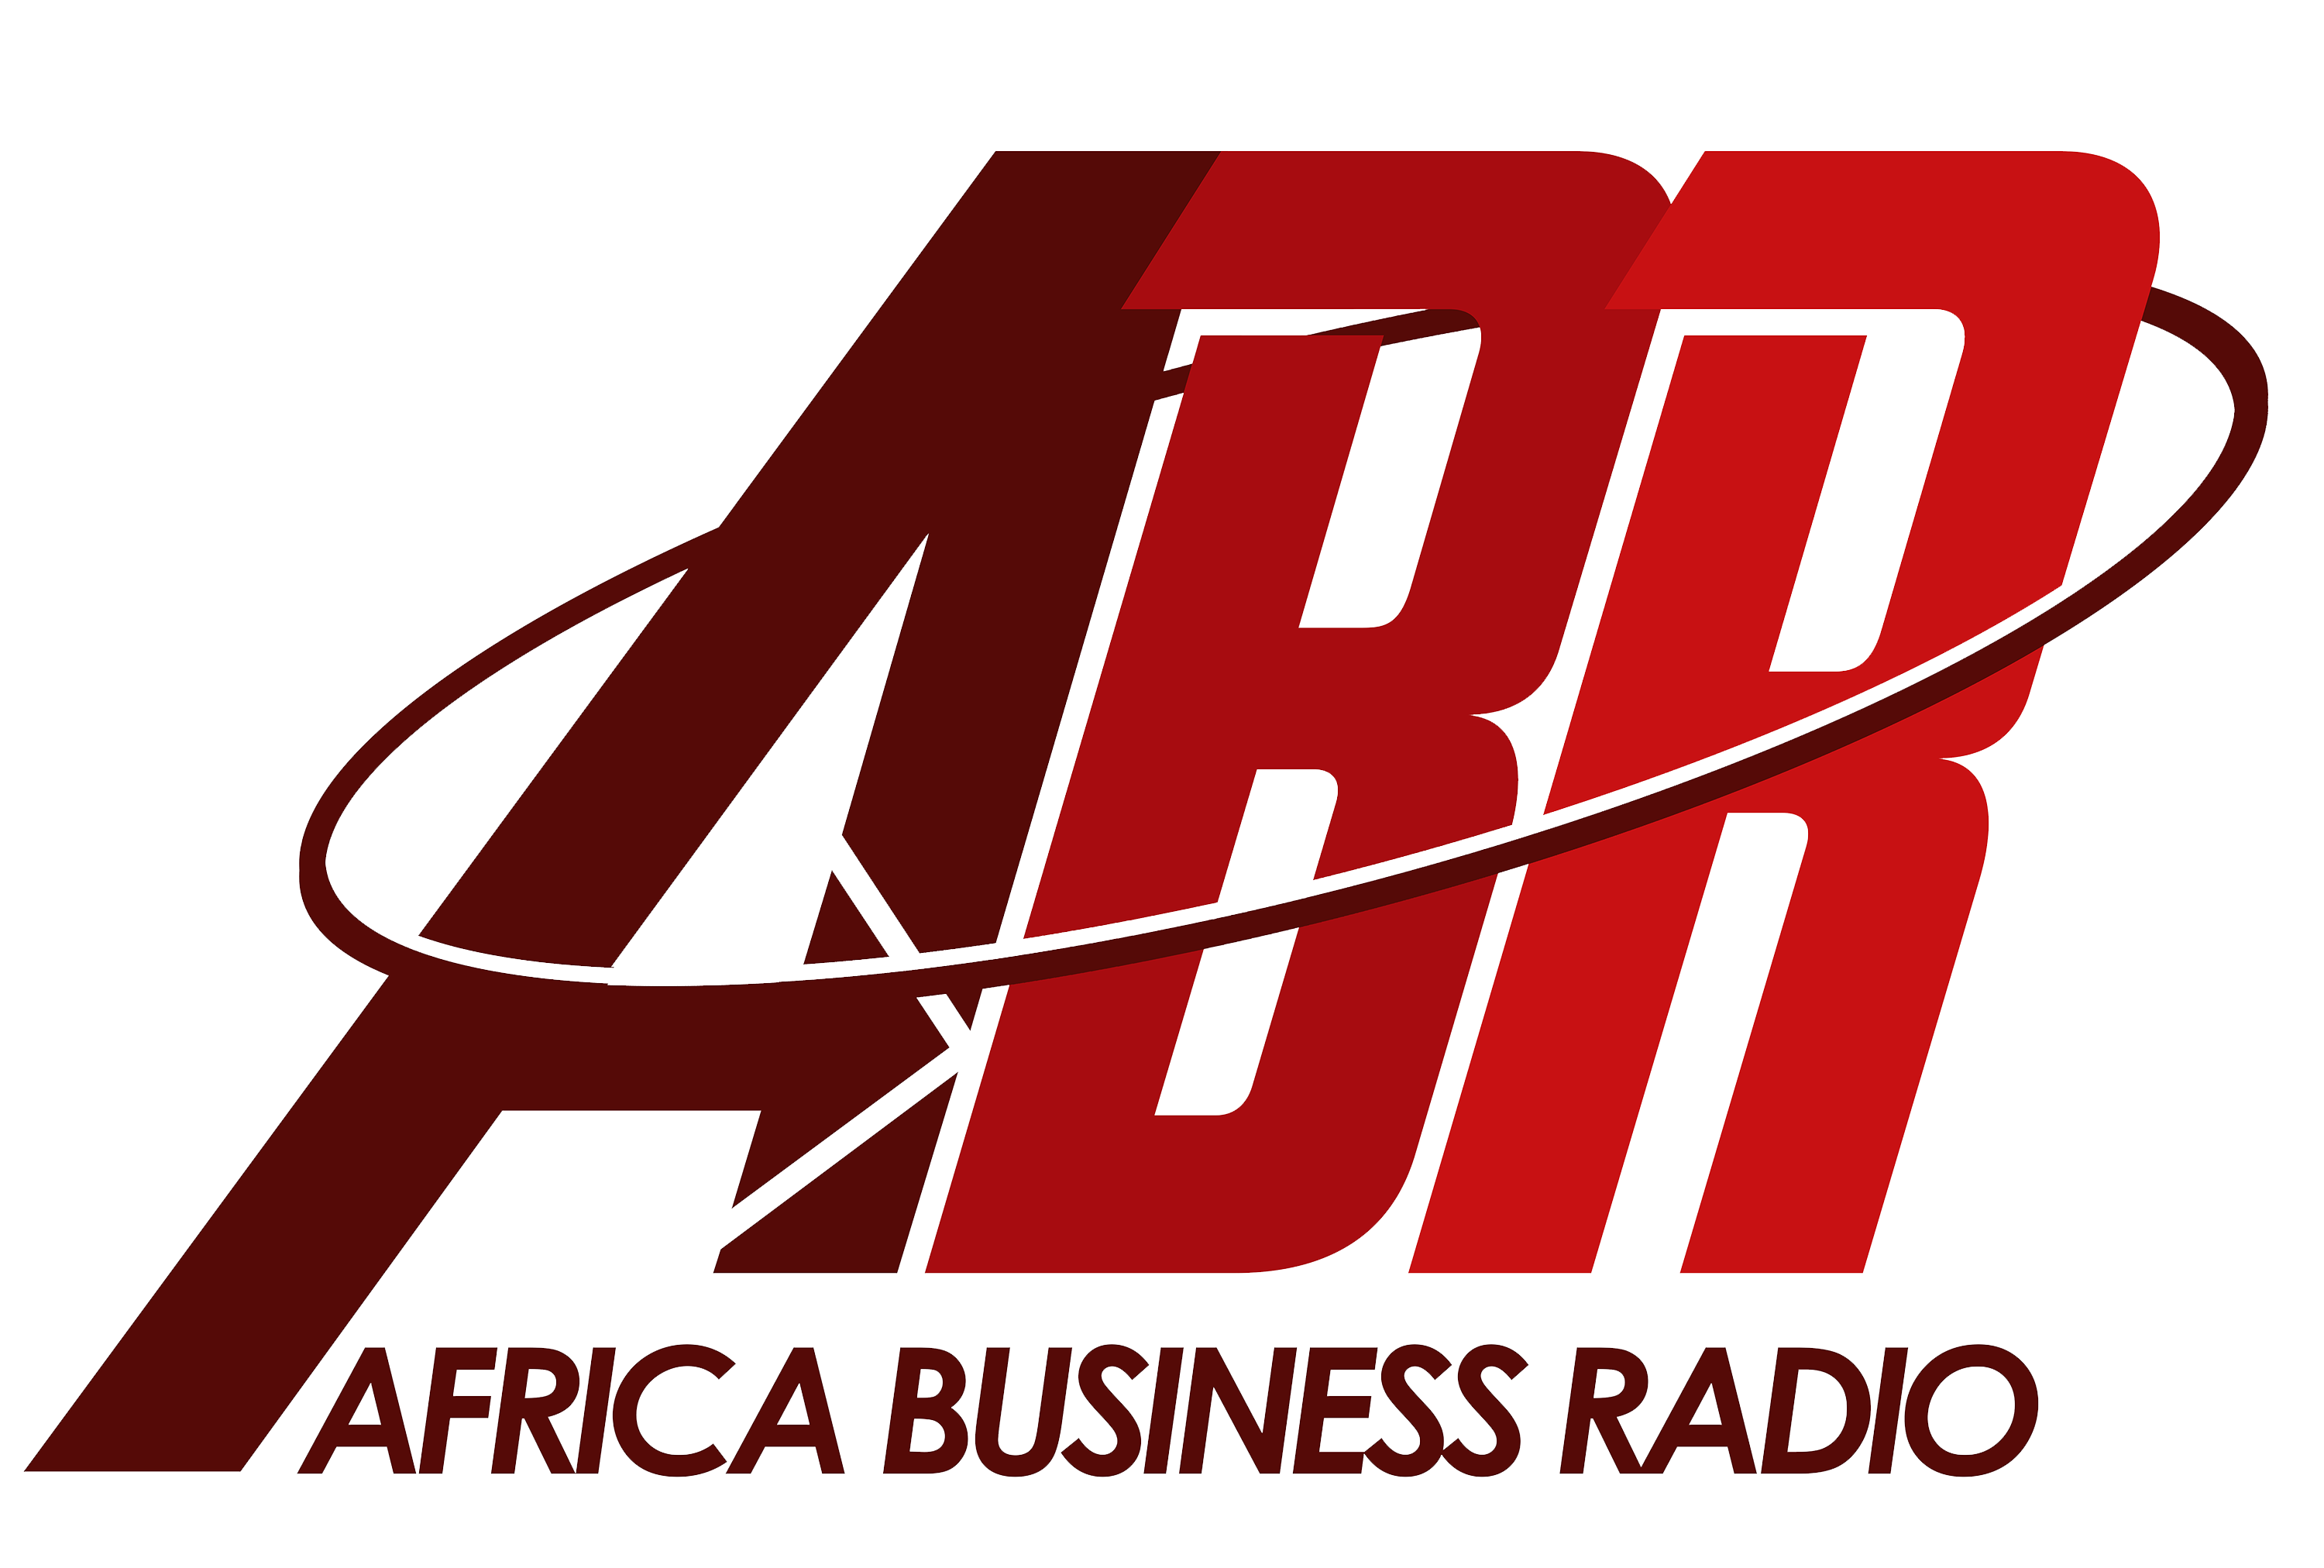 Africa Business Radio - Logo.png